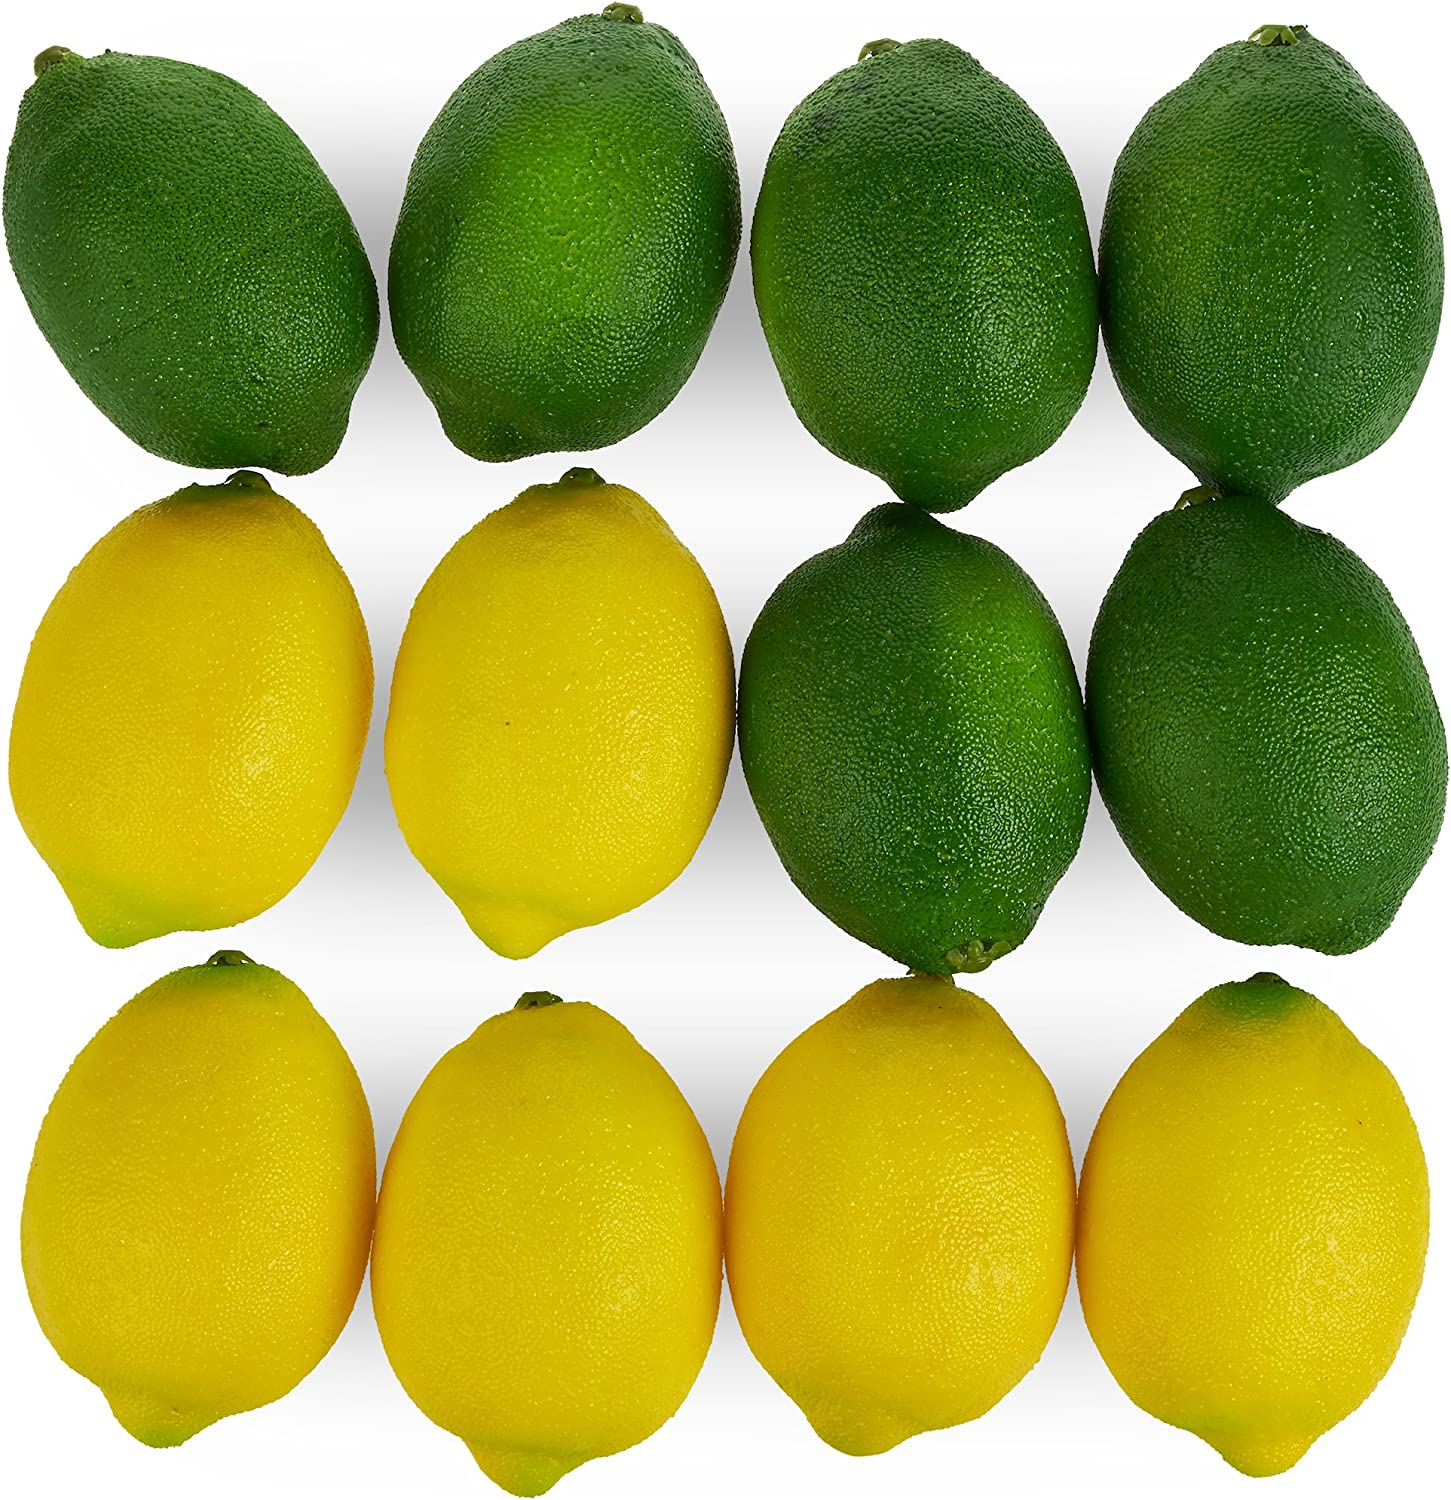 Juvale Large Artificial Lemons and Limes, Realistic Decorative Home Kitchen Fake Prop Fruit - Set of 12